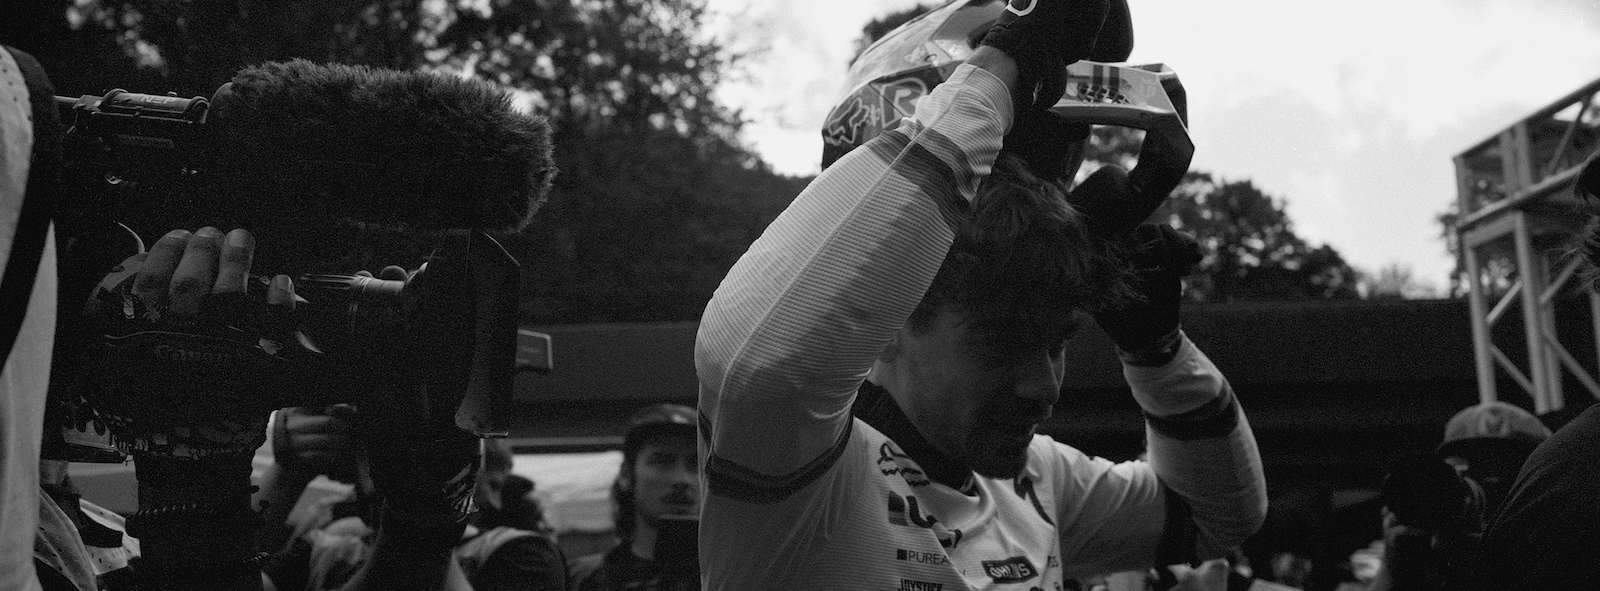 The Men s DH Final in West Virginia was an absolute nail bitter. The overall hung delicately over the heads of the two most passionate athletes and yet was decided by neither of them.